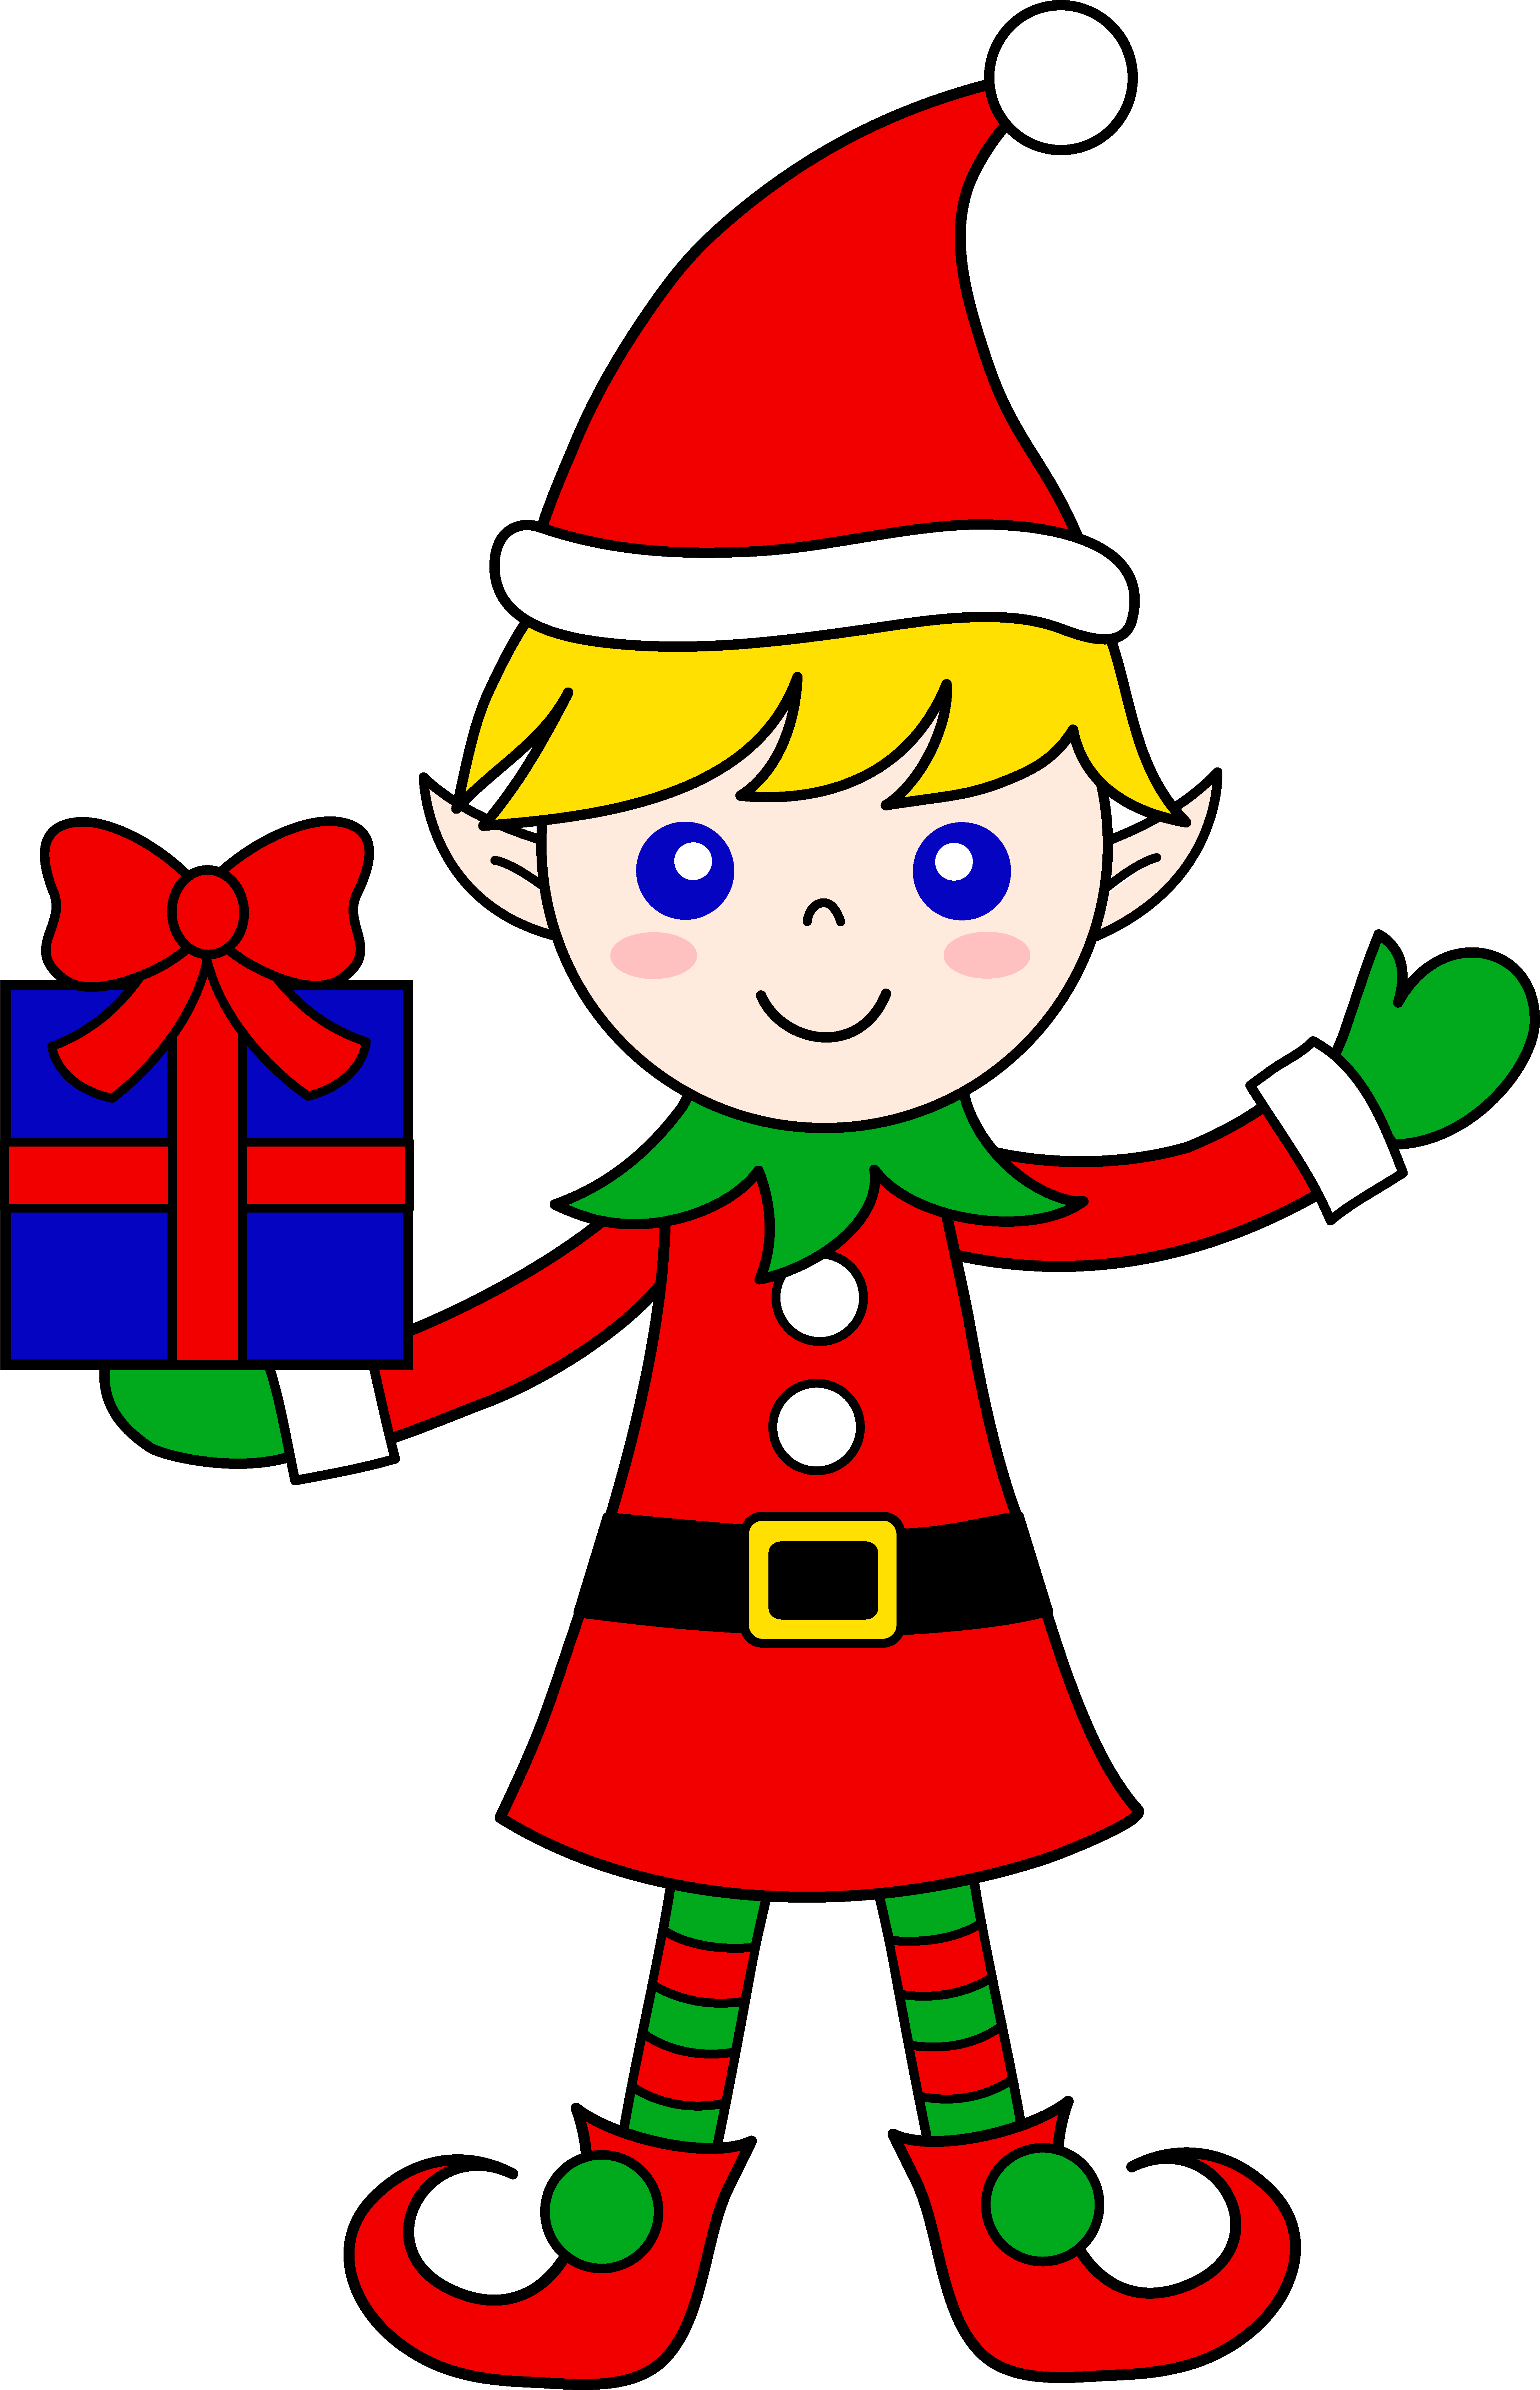 Christmas elf clipart images.